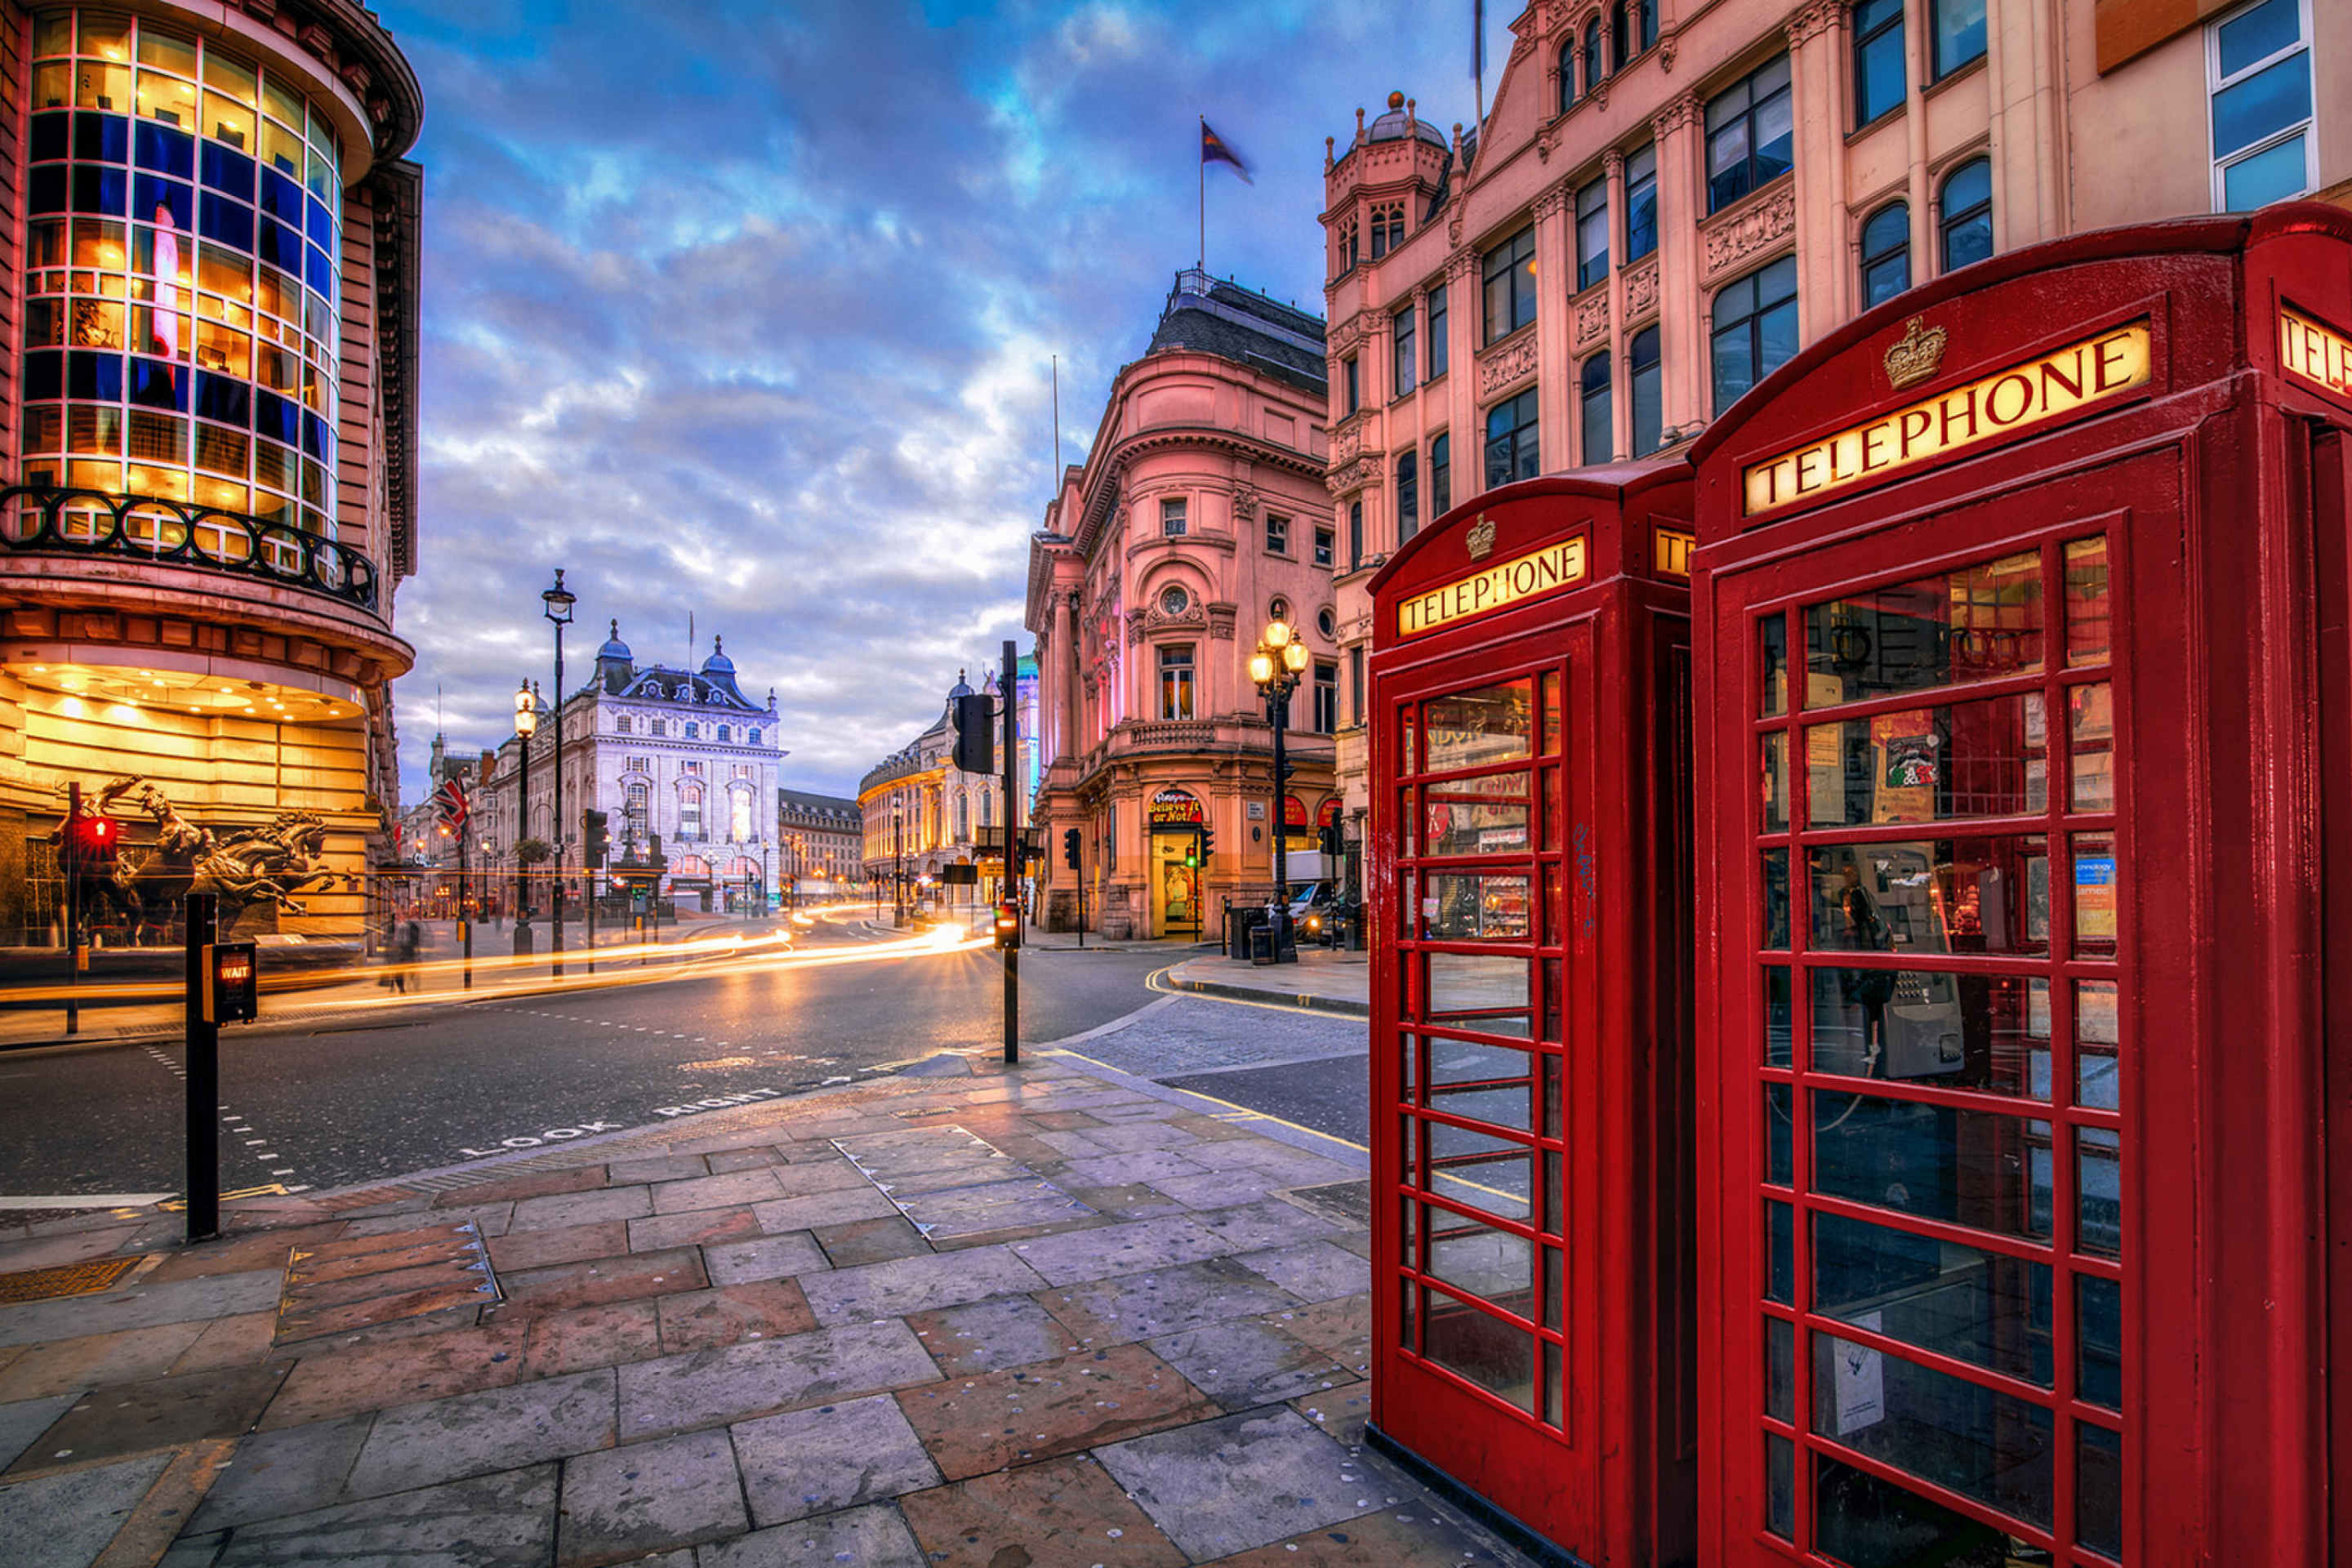 london-tumblr-photo-wallpapers